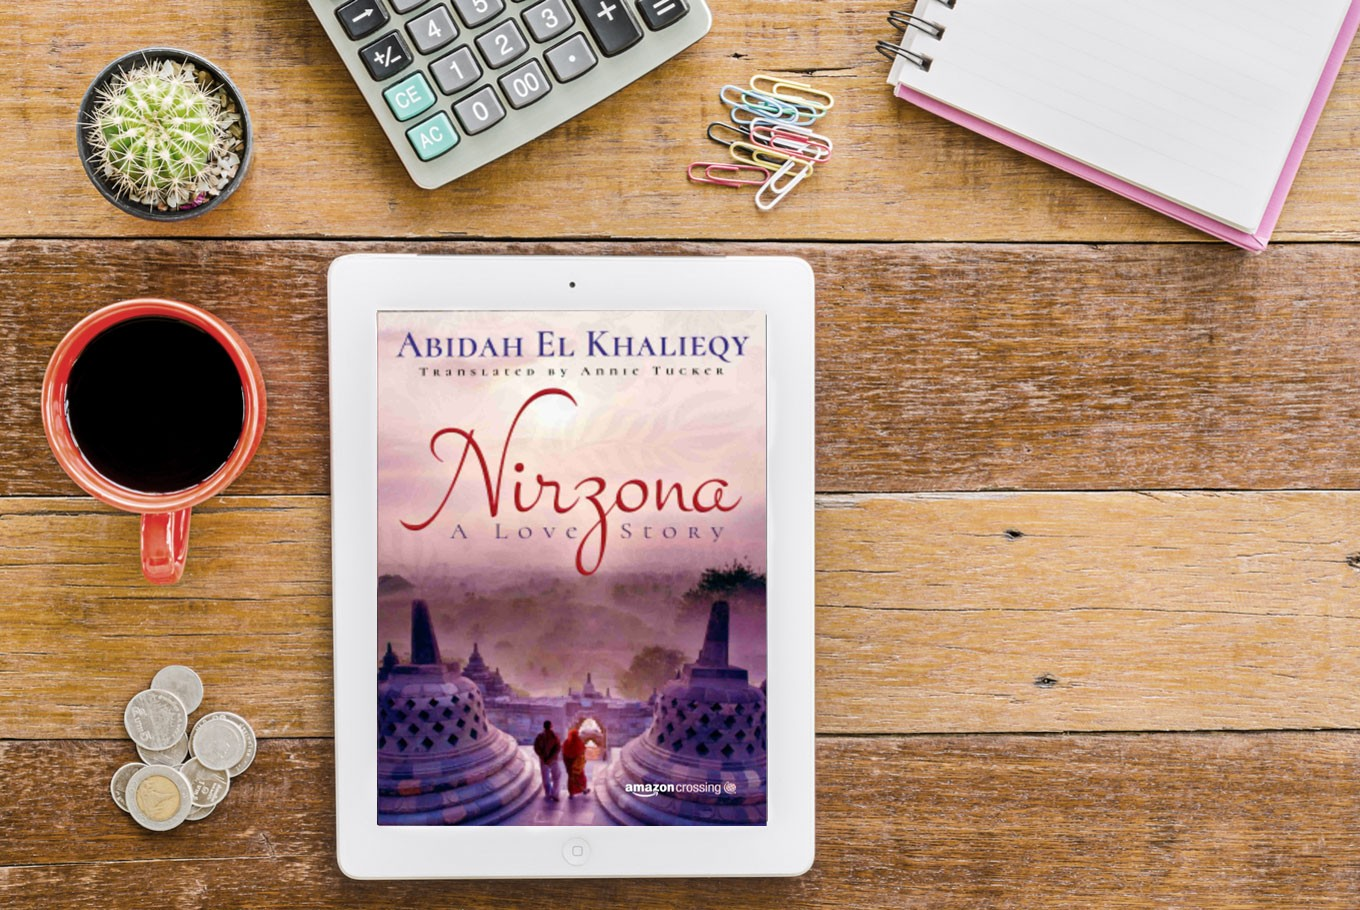 Dissecting 'Nirzona', a love story narrated through Aceh's social and cultural contexts